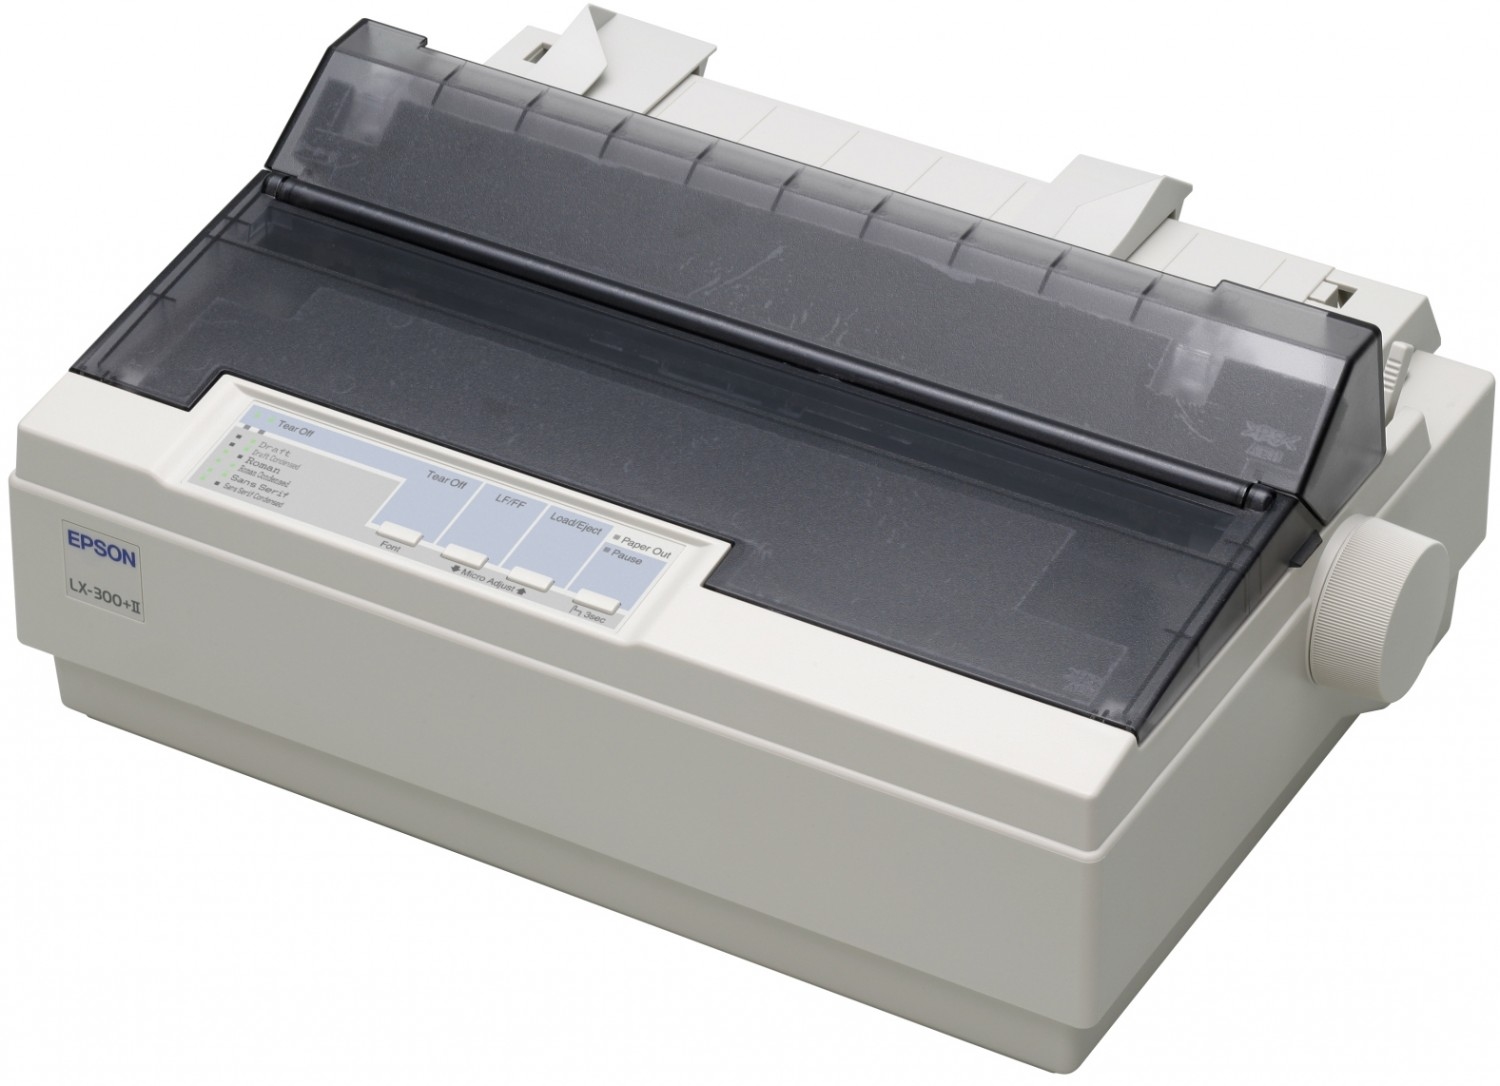 epson LX 300II driver for pc